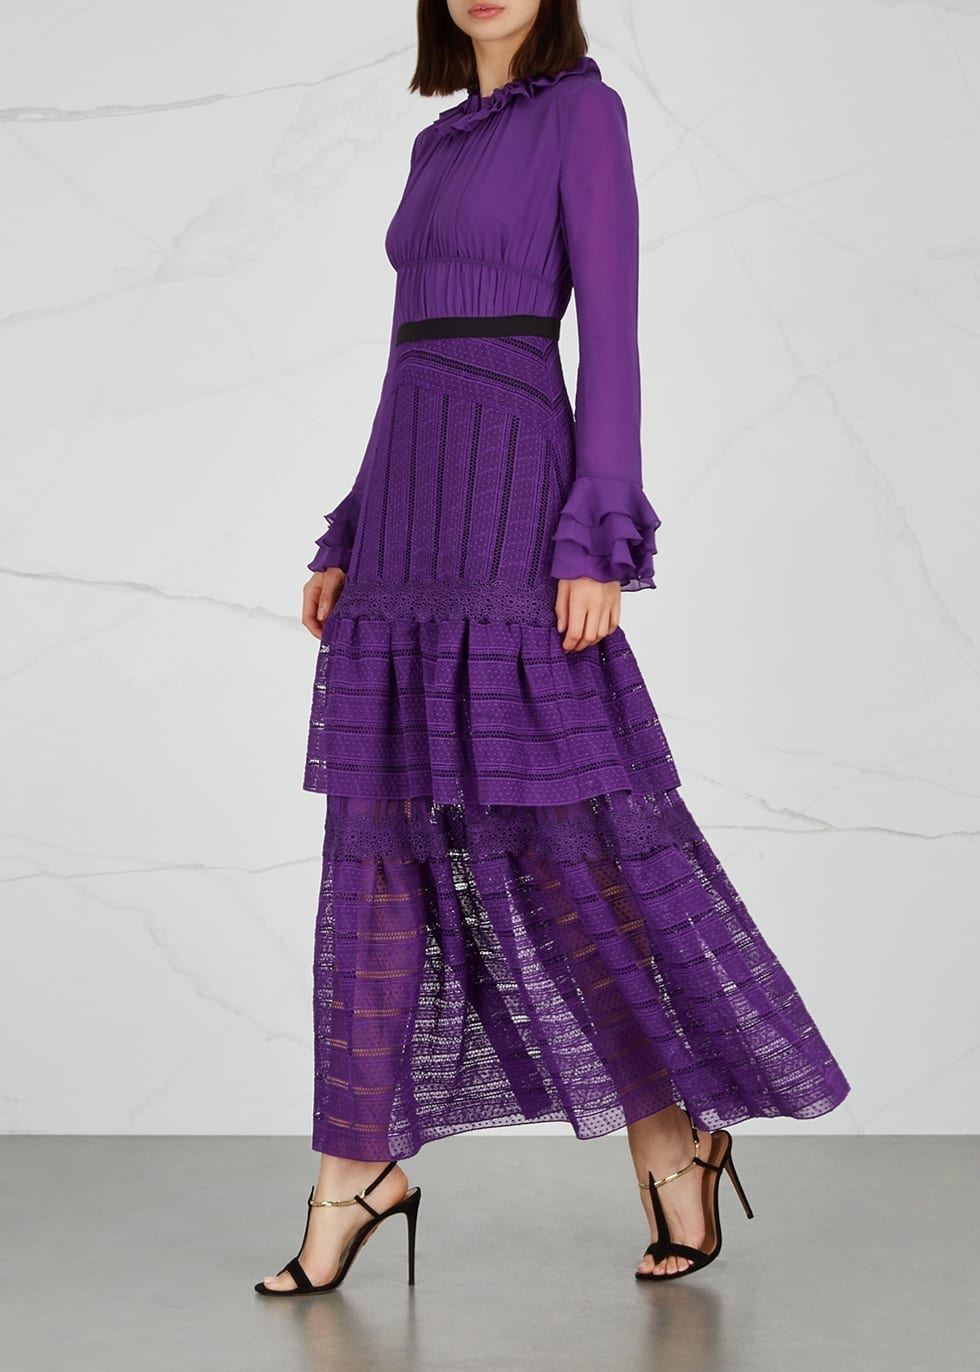 THREE FLOOR Ultralicious Purple Guipure Lace Purple Gown